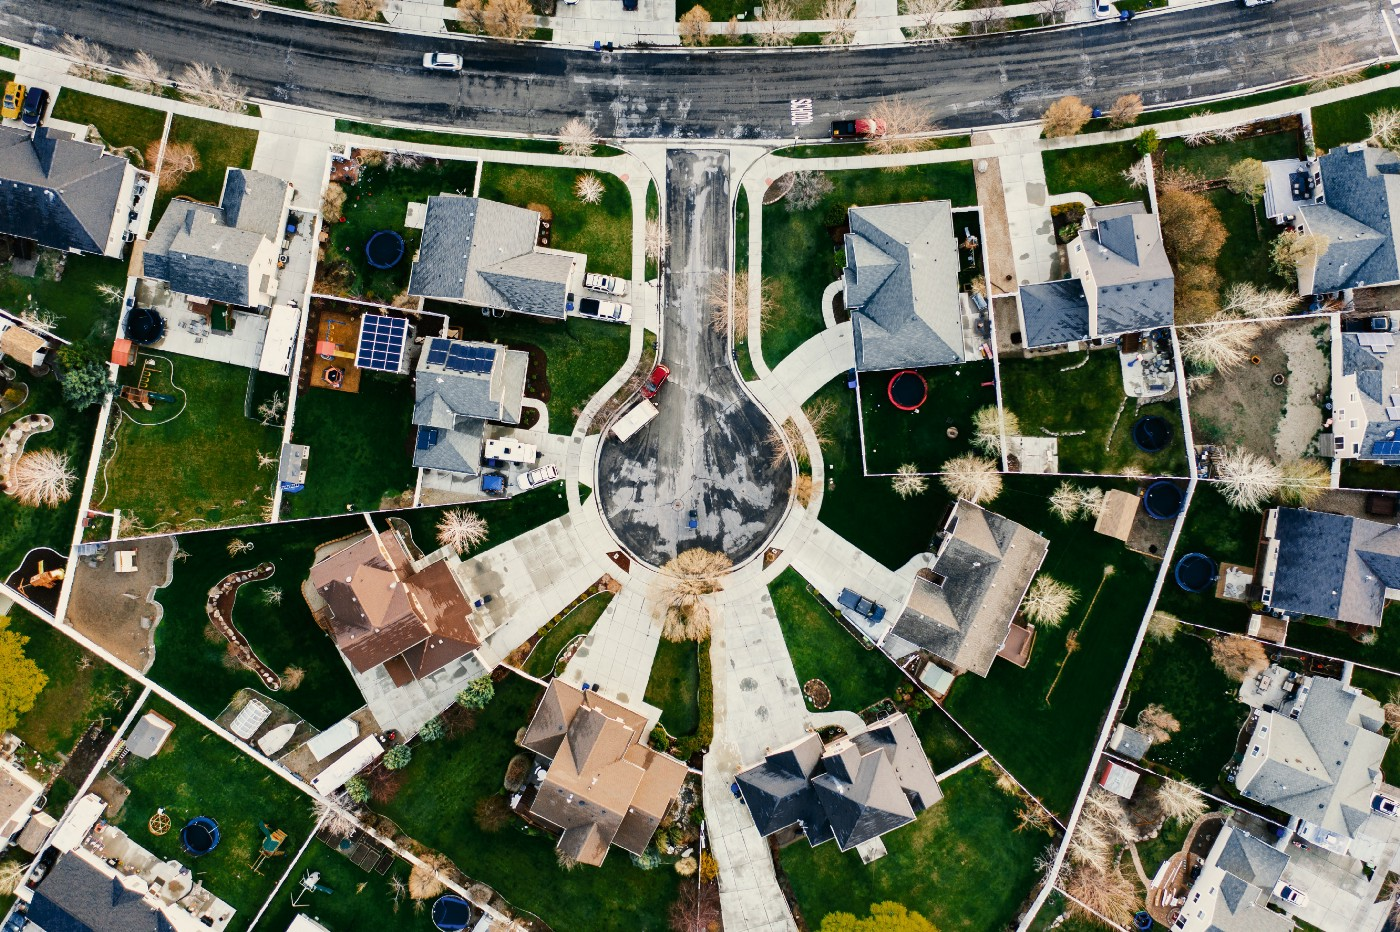 This is an aerial view of a neighborhood, showing a cluster of houses.